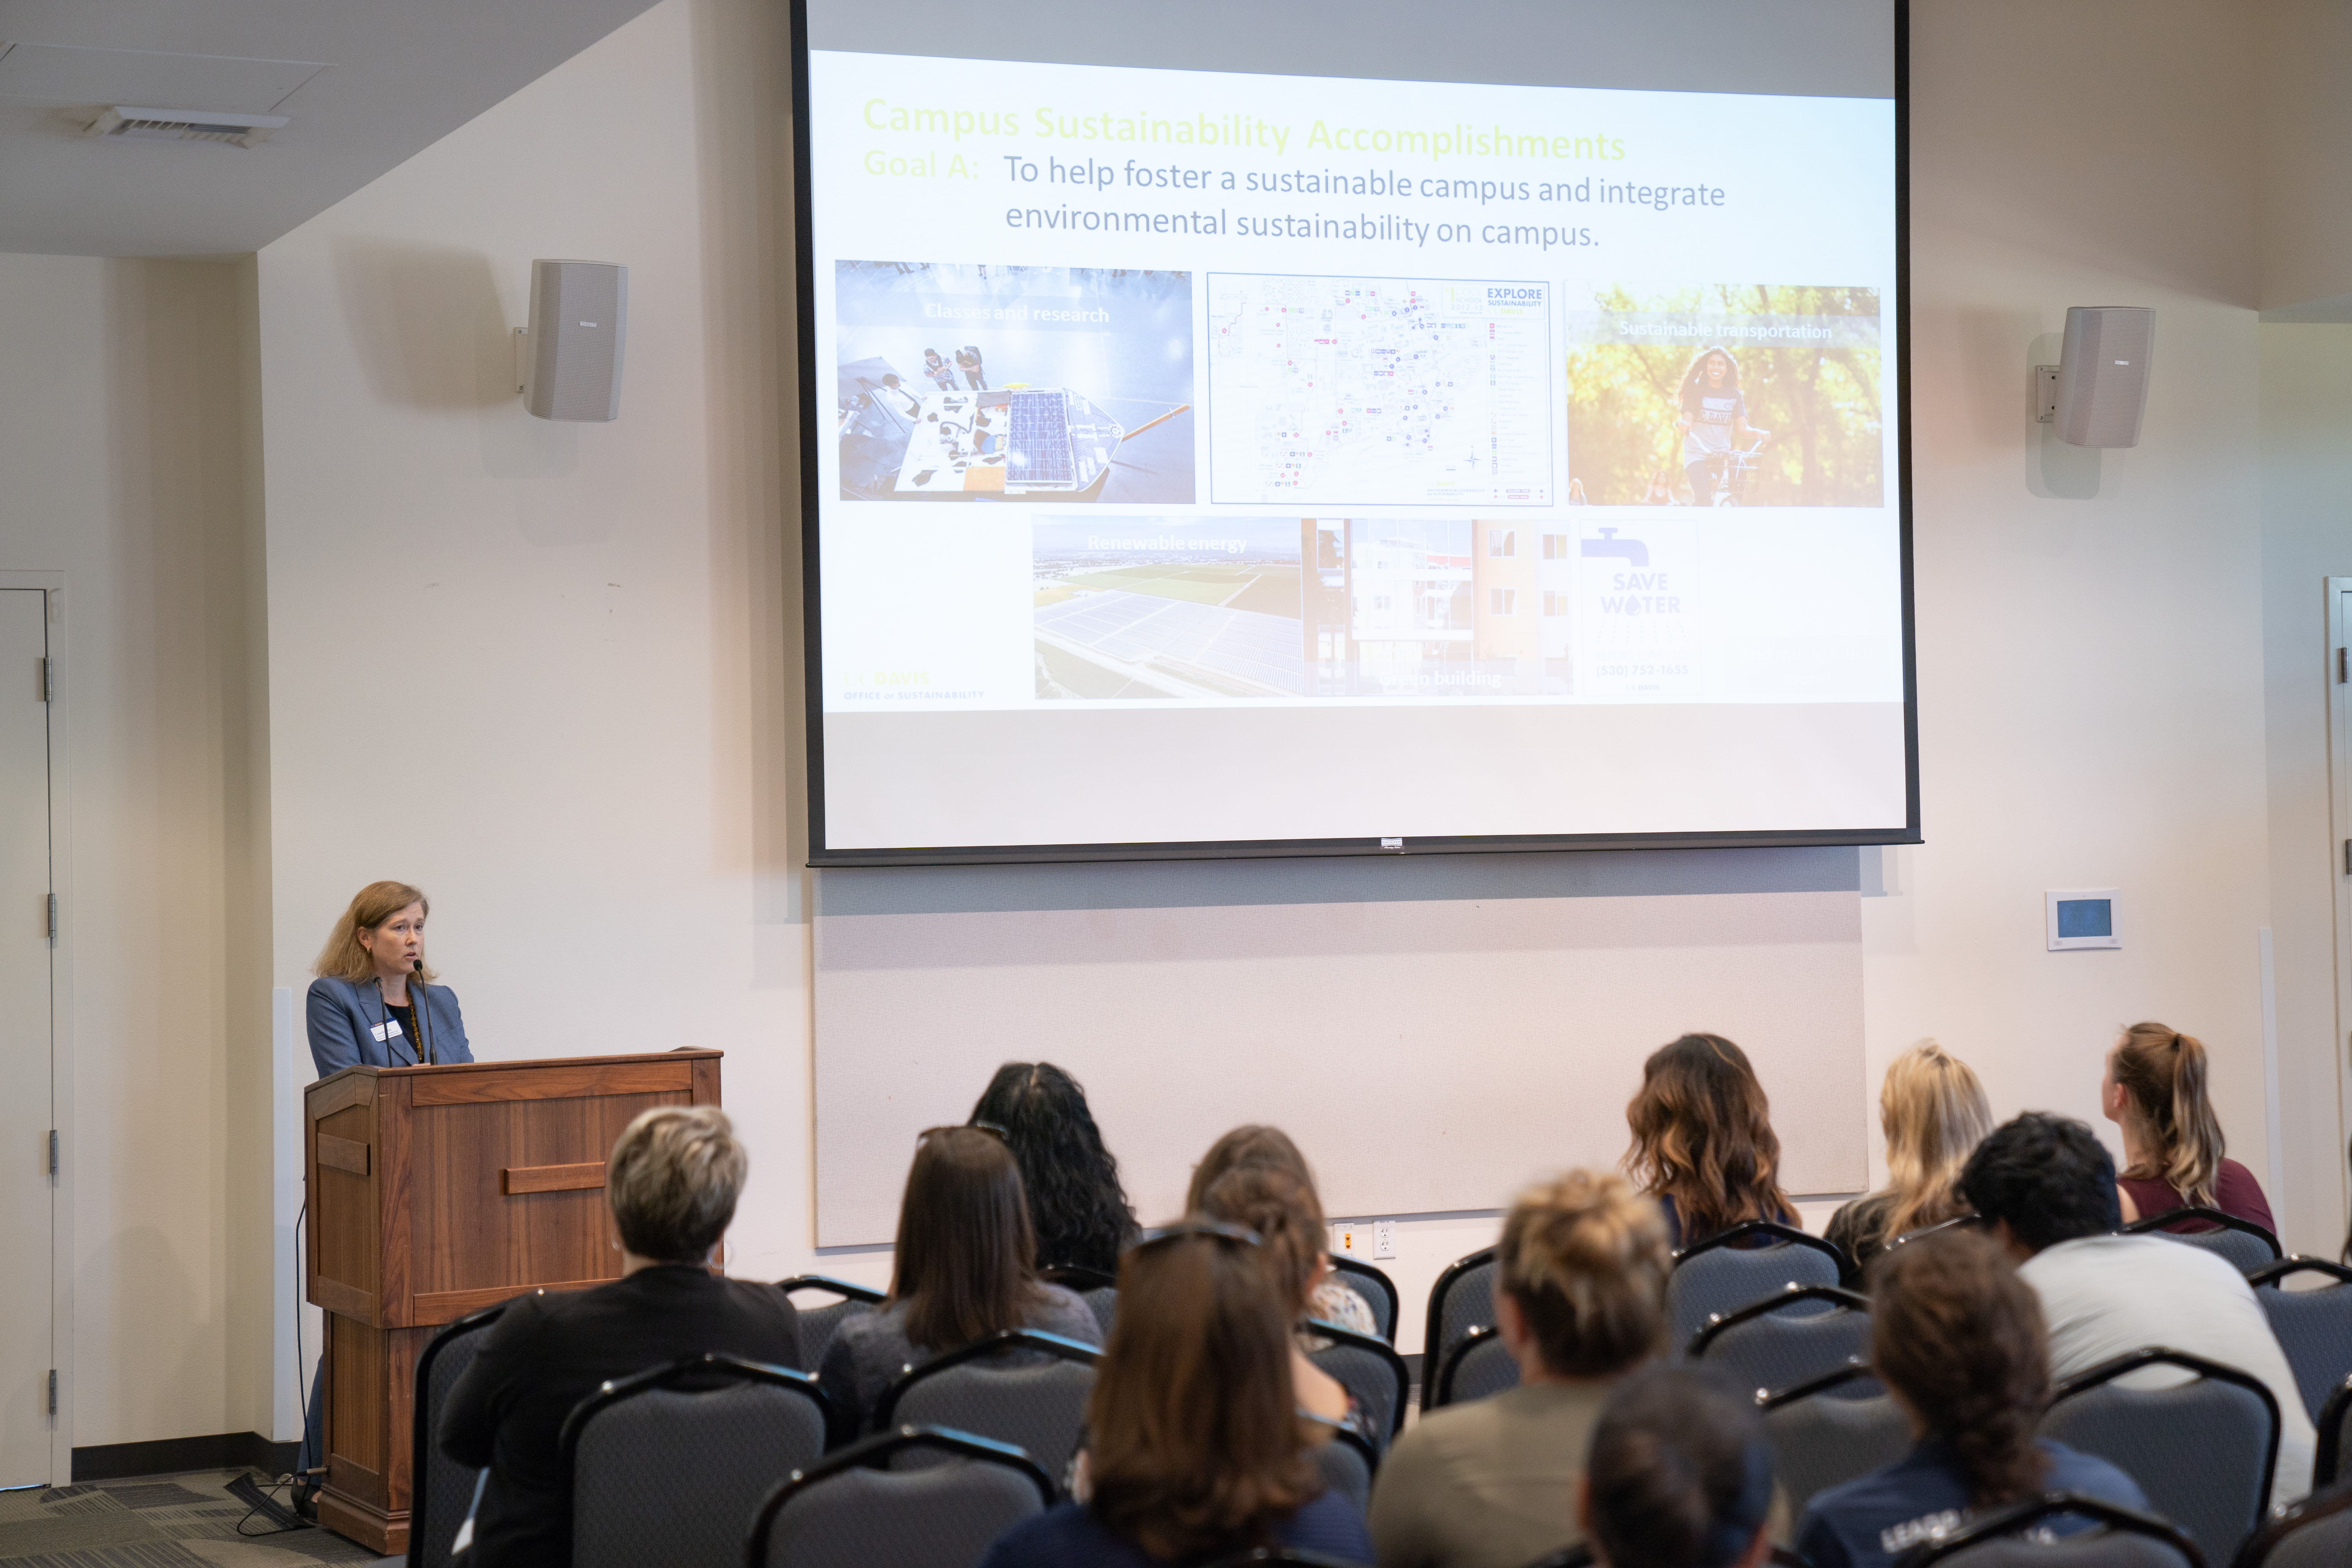 Image of Camille Kirk, director of the UC Davis Office of Sustainability, speaking at the 2019 Sustainability Summit.